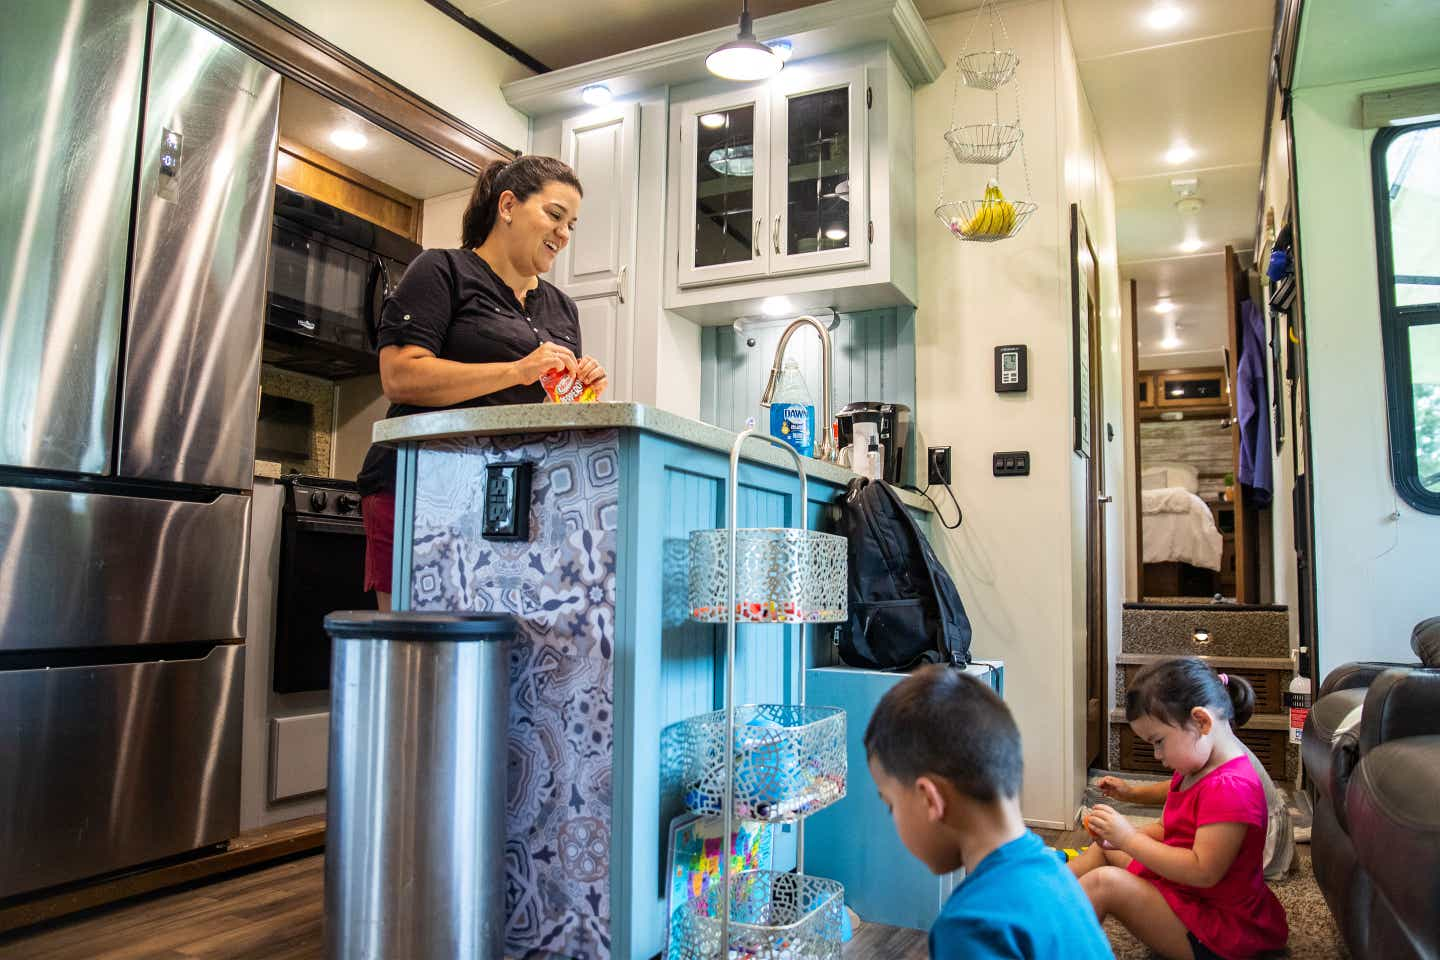 Angelica (left) preps in their RV kitchen while the children (bottom-right) play on the ground with their toys.